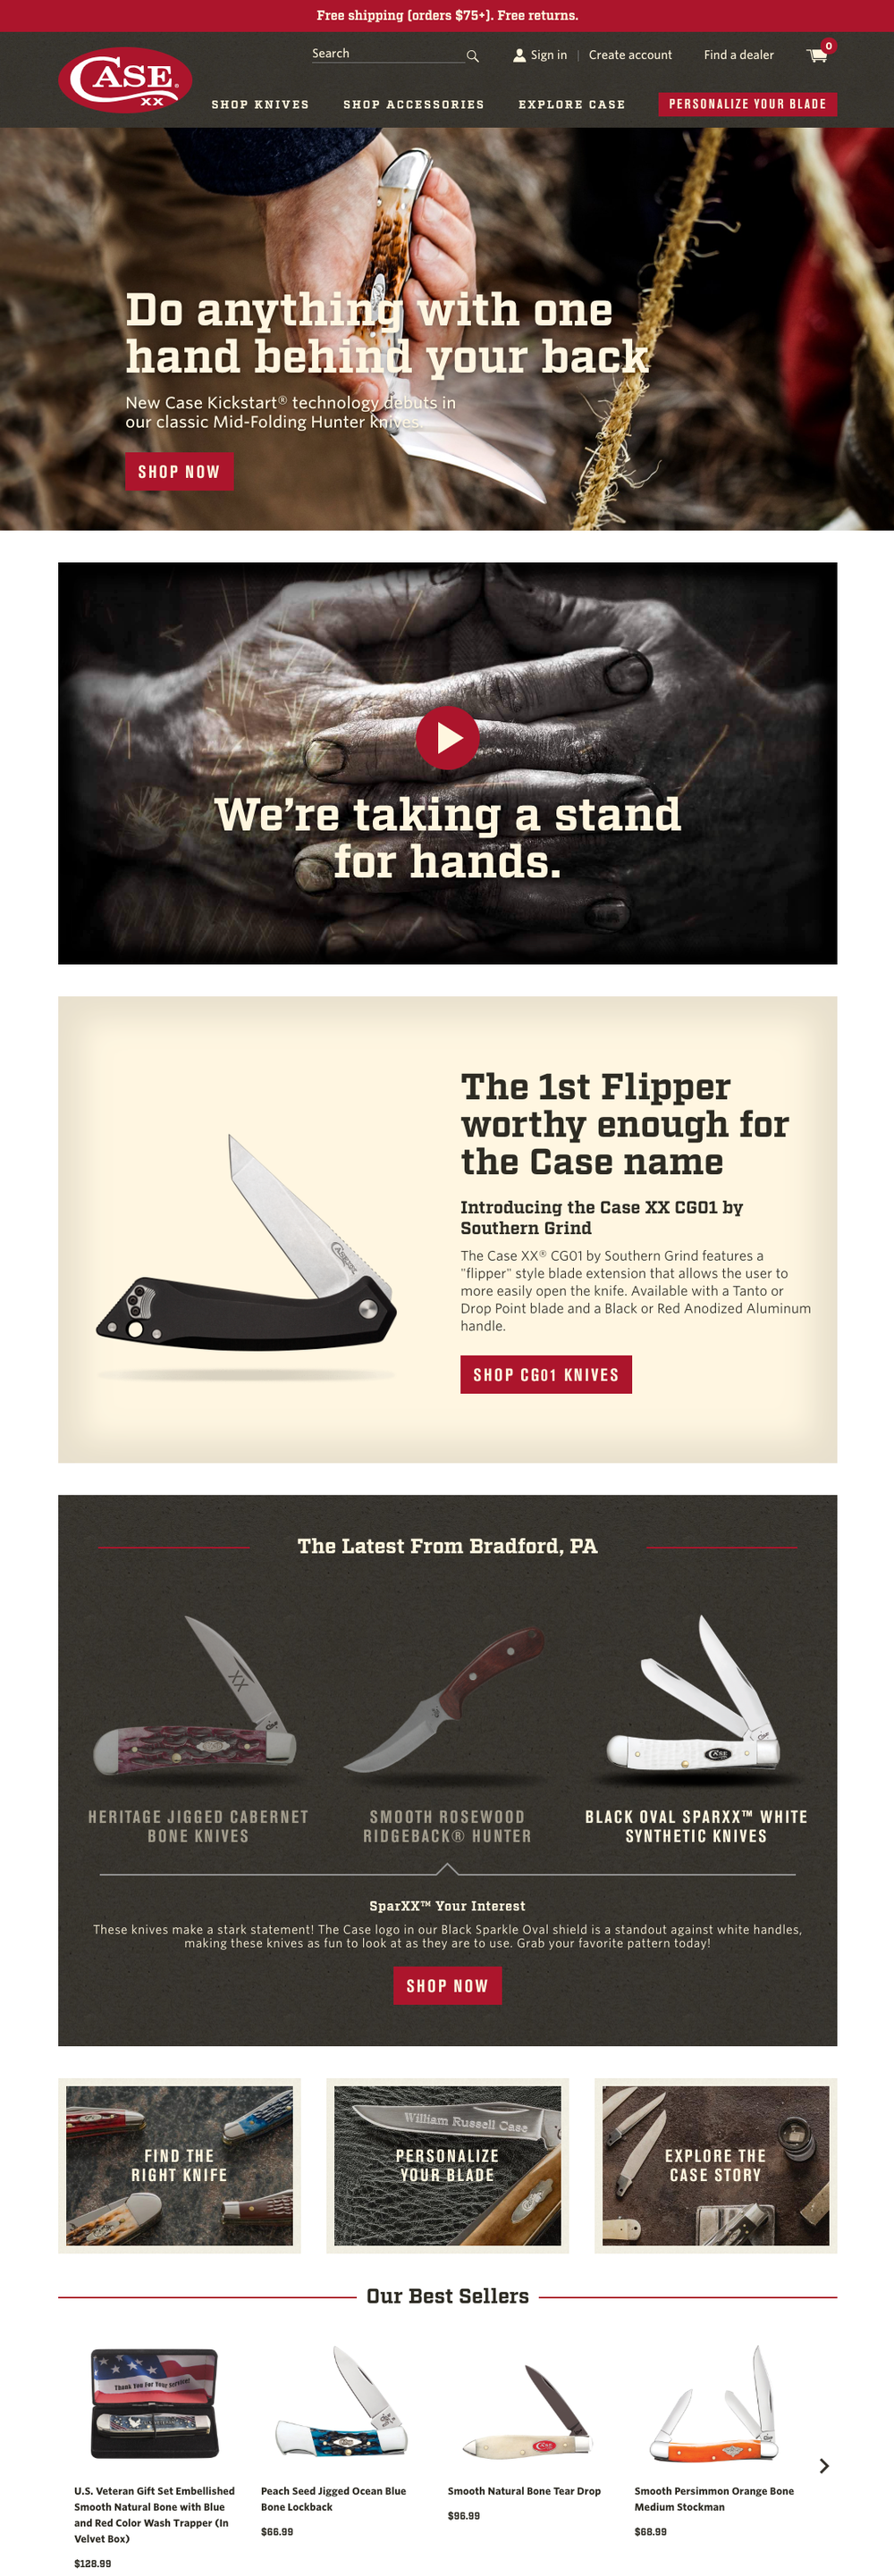 Case Knives - home.png